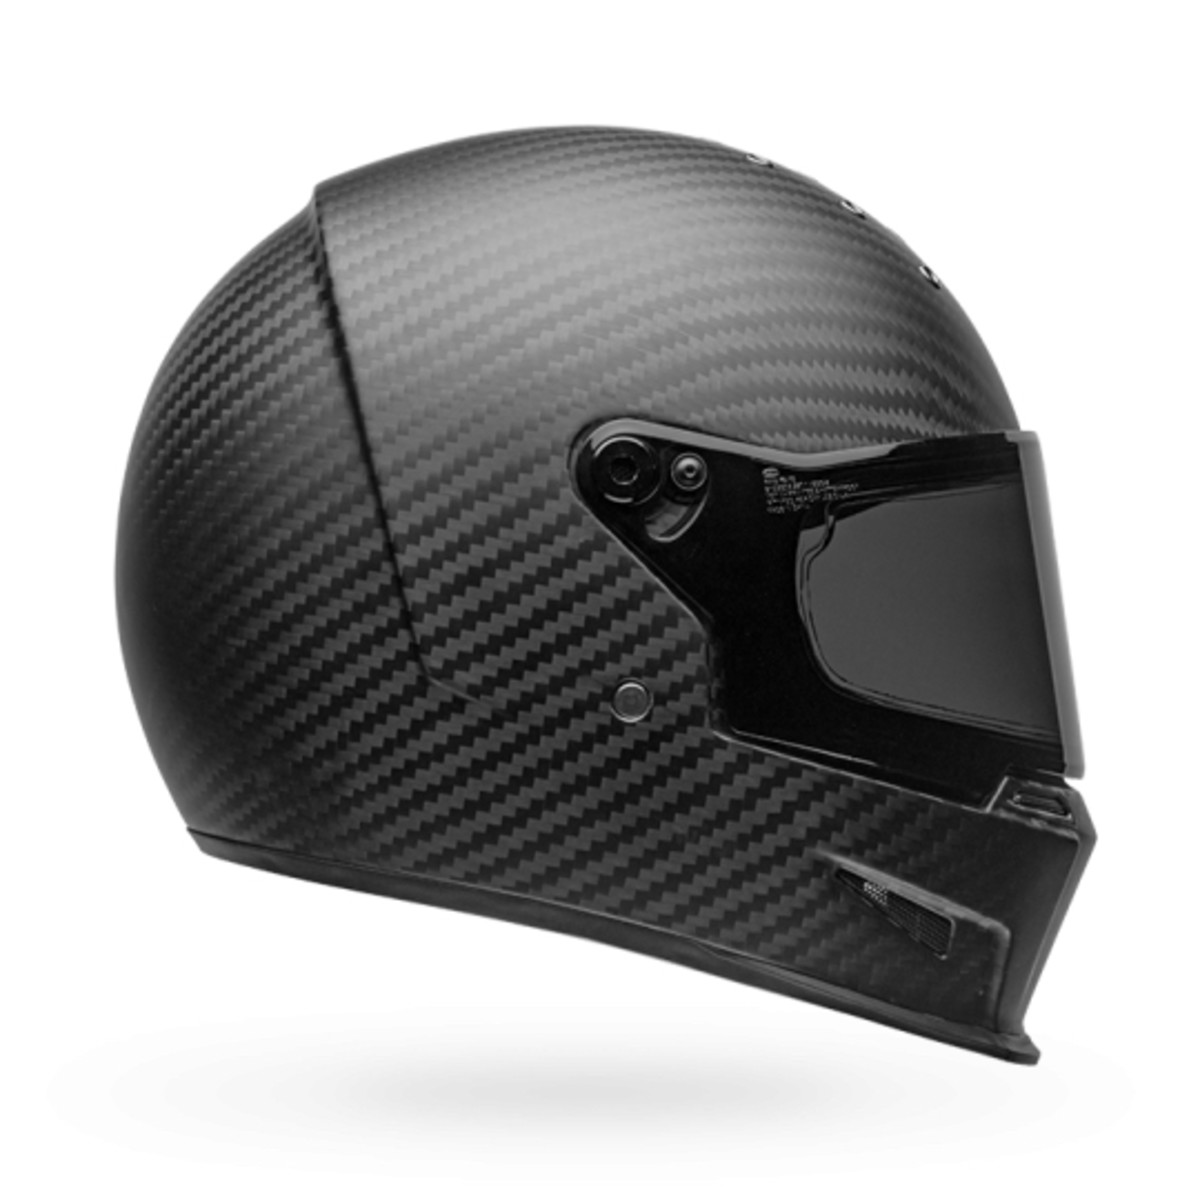 Bell introduces its new auto-inspired Eliminator helmet